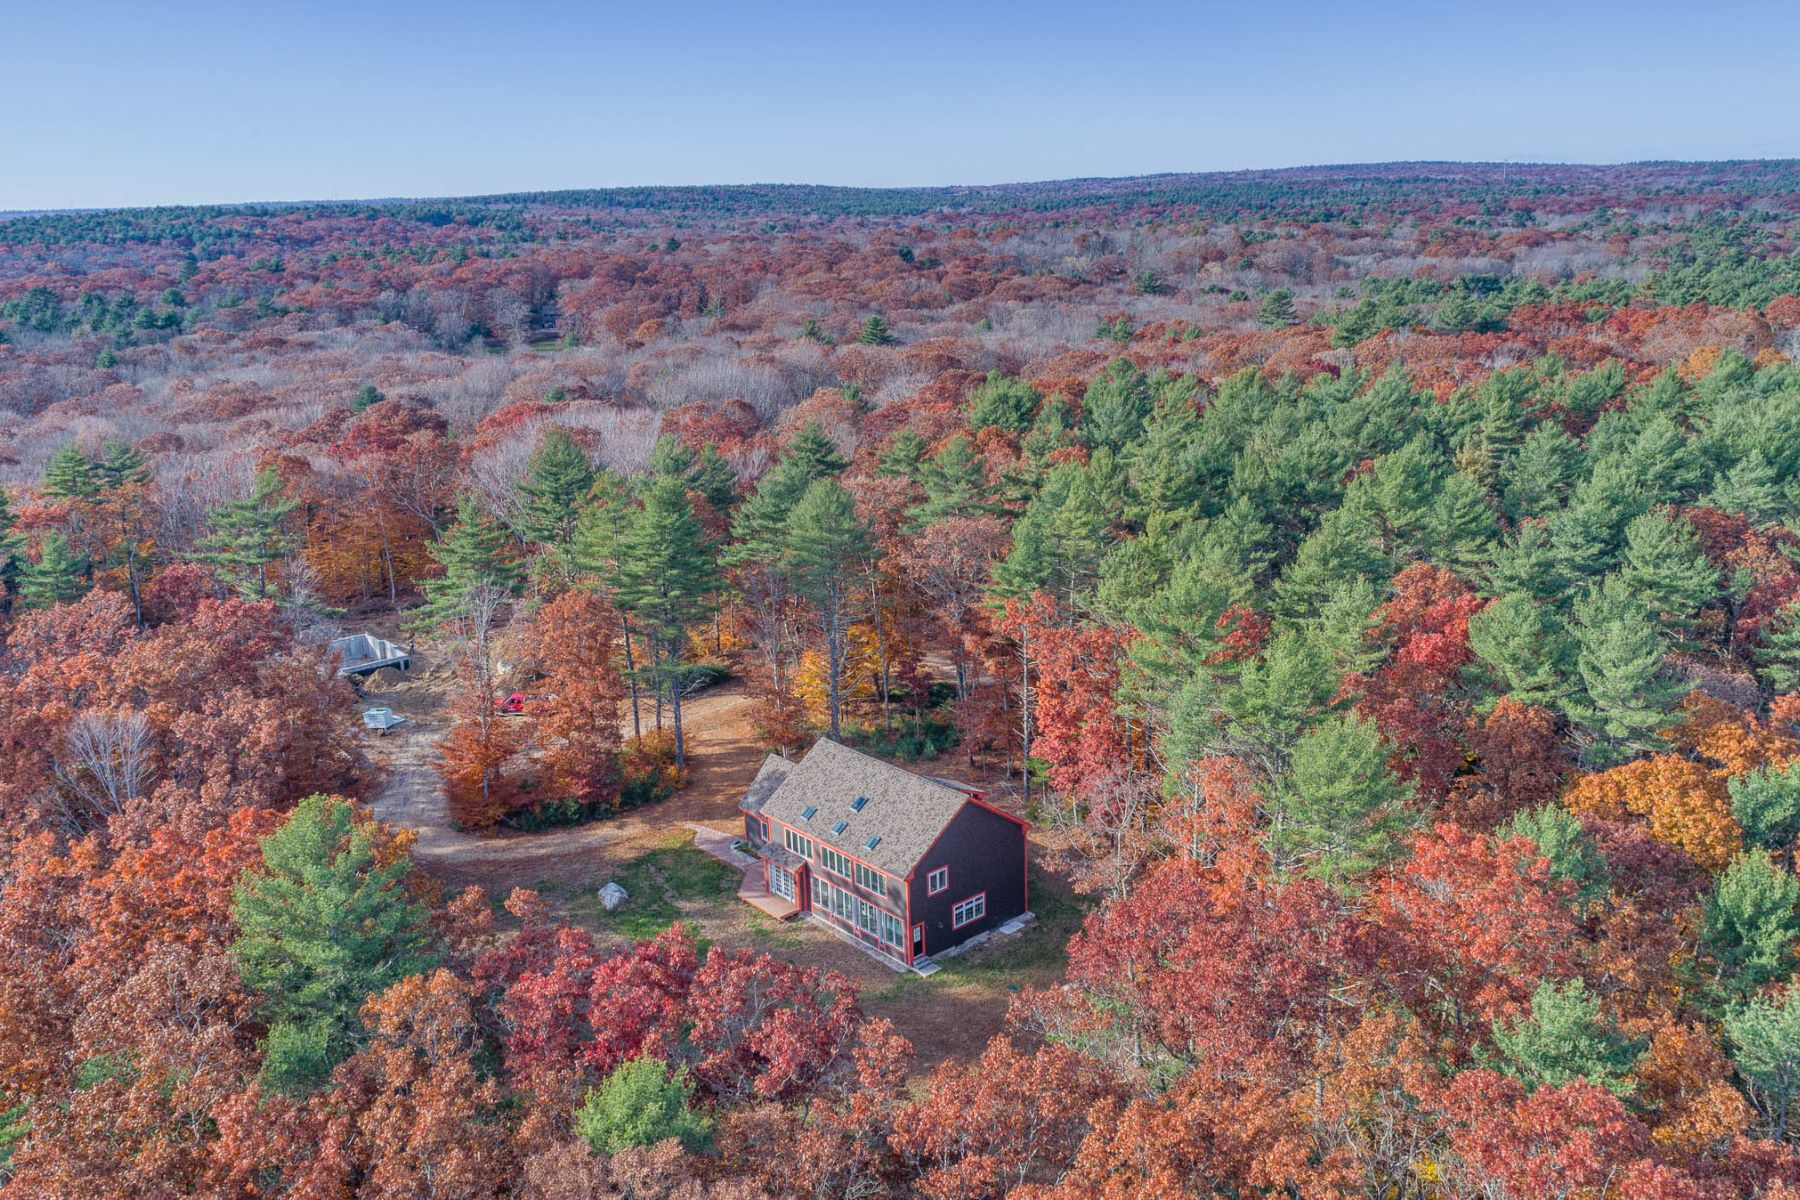 Single Family Homes for Sale at 12 Sanford Farm Rd., Exeter, RI 12 Sanford Farm Rd. Exeter, Rhode Island 02822 United States